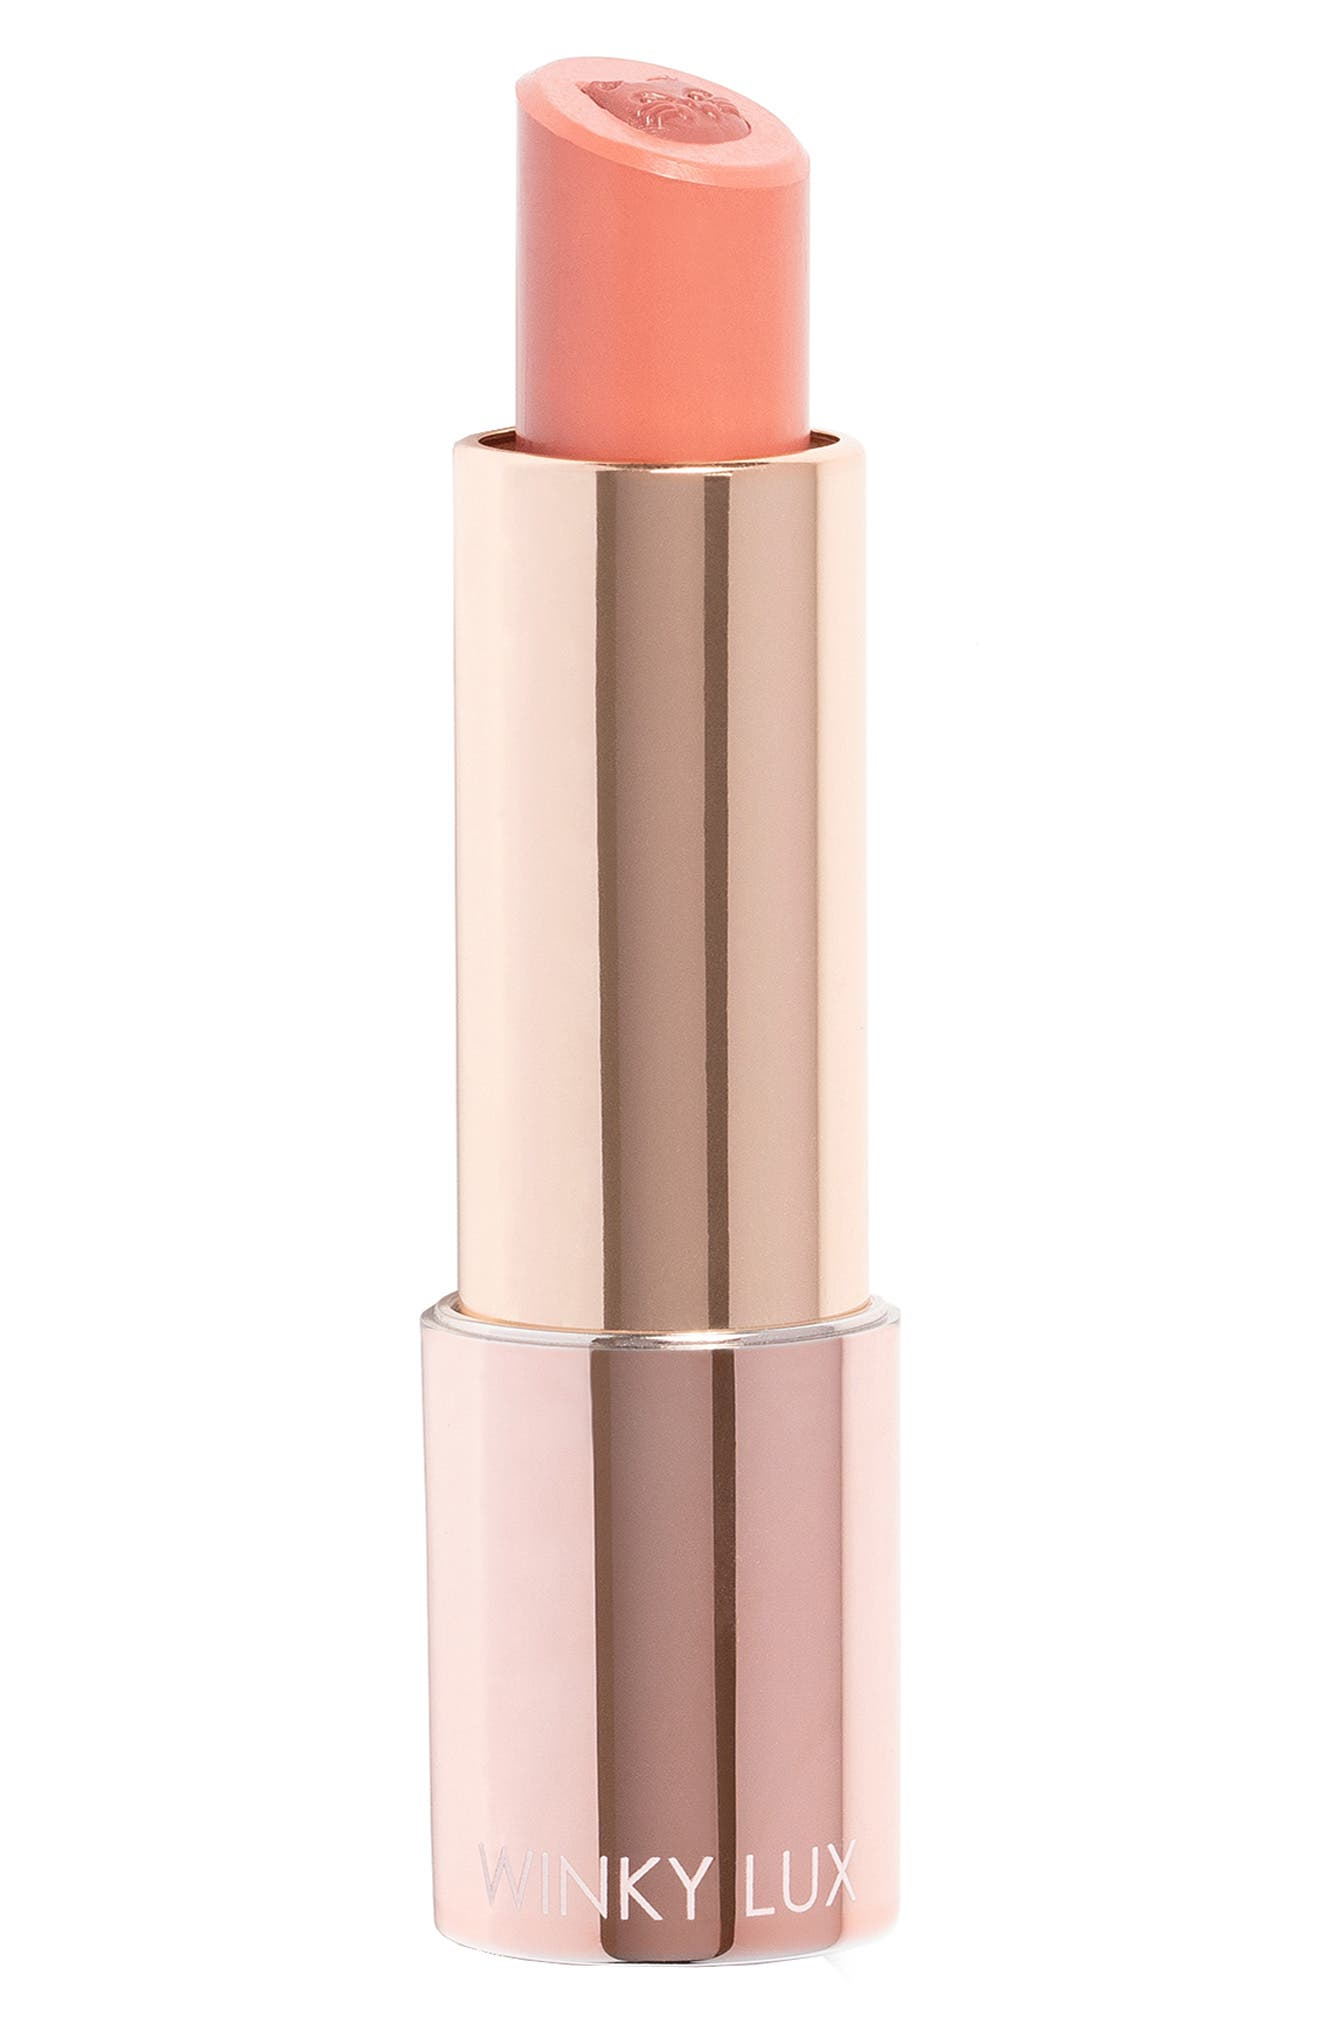 Winky Lux PURRFECT POUT LIPSTICK - PAWSH